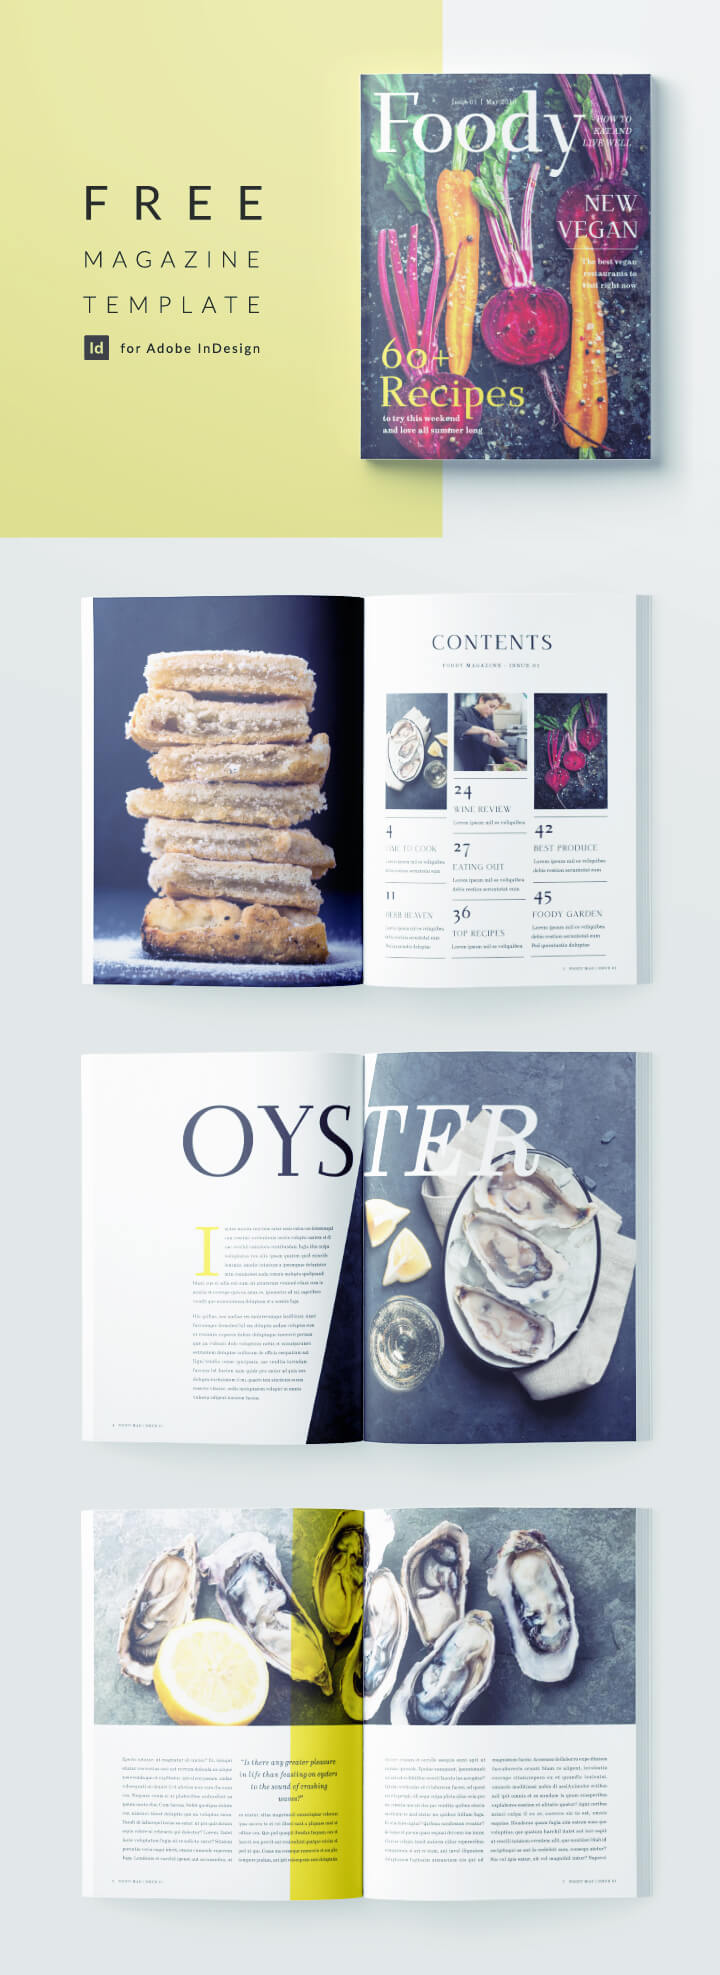 Free Magazine Template - Modern Food Magazine - 12 pages - Free Download for InDesign